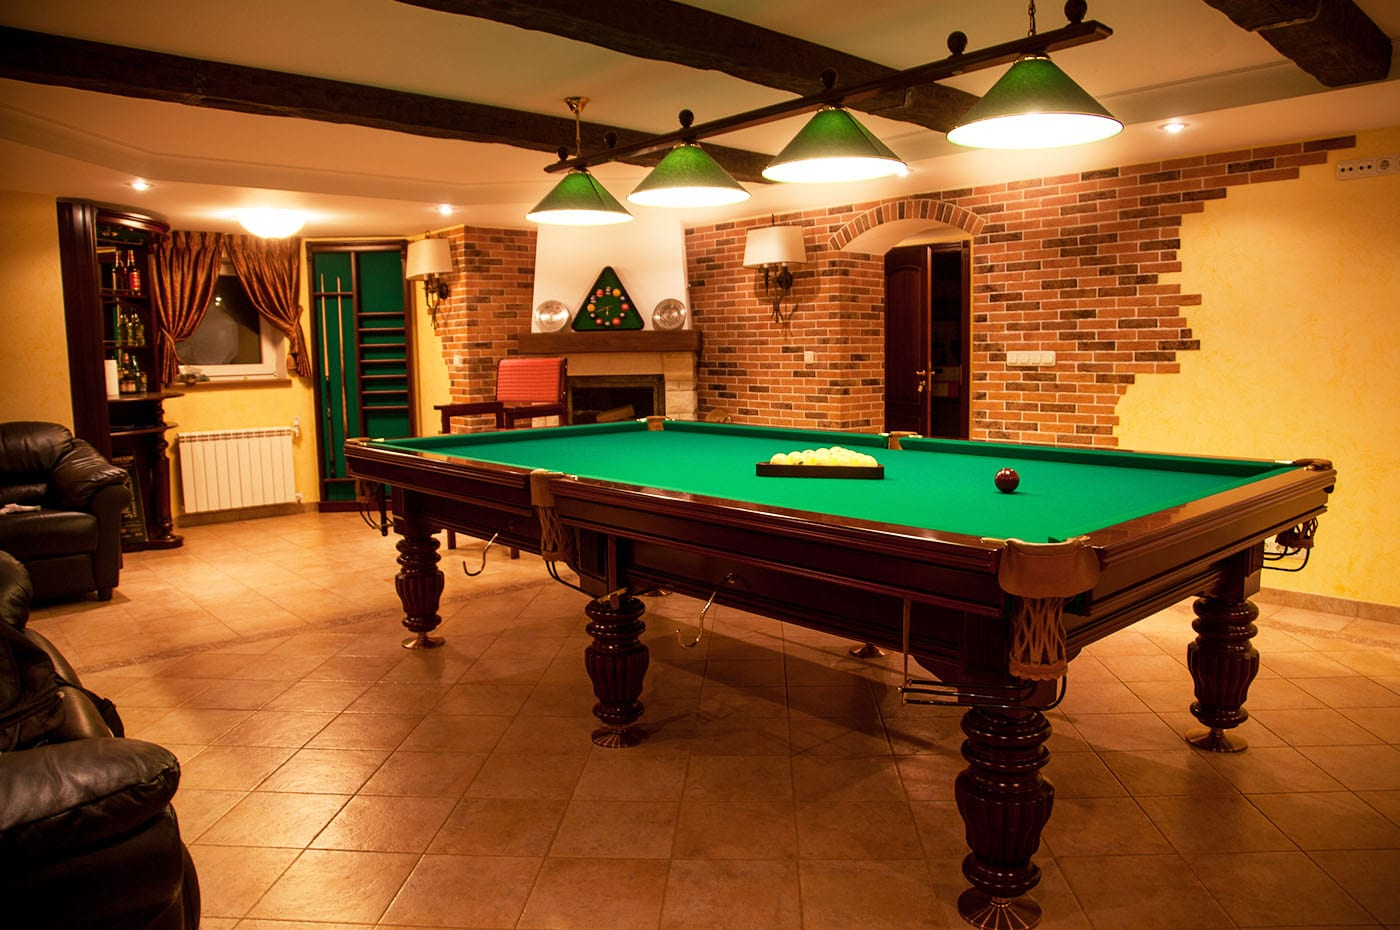 Entertaining will never be the same again. Enjoy playing pool, throwing darts, shuffleboard or what ever you have in mind.